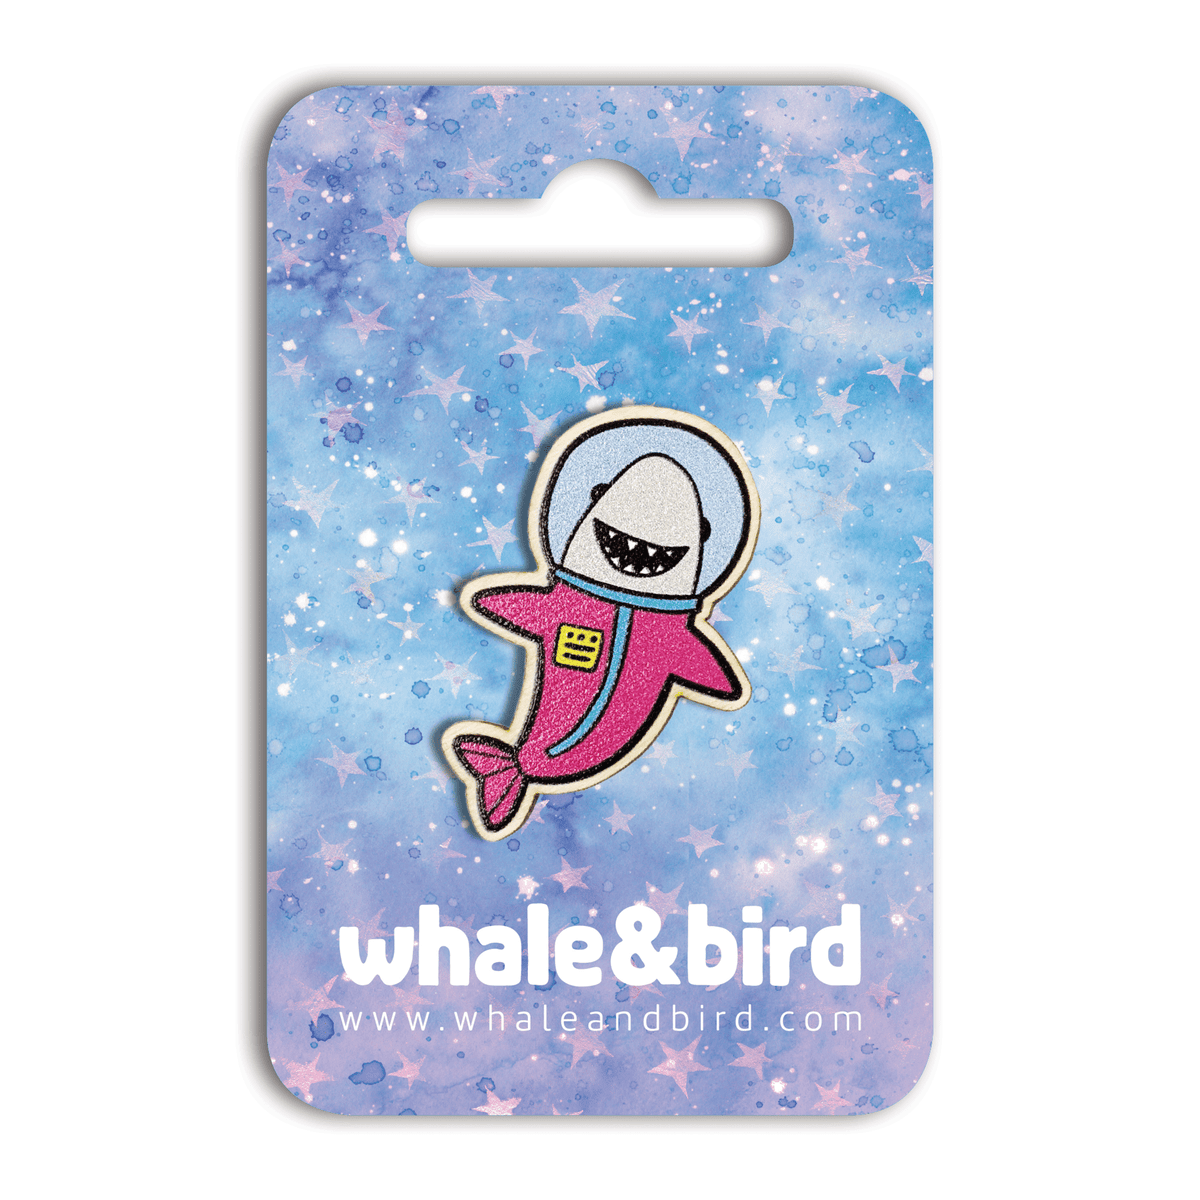 Space Shark Hard Enamel Pin by Anna Alekseeva - Whale and Bird